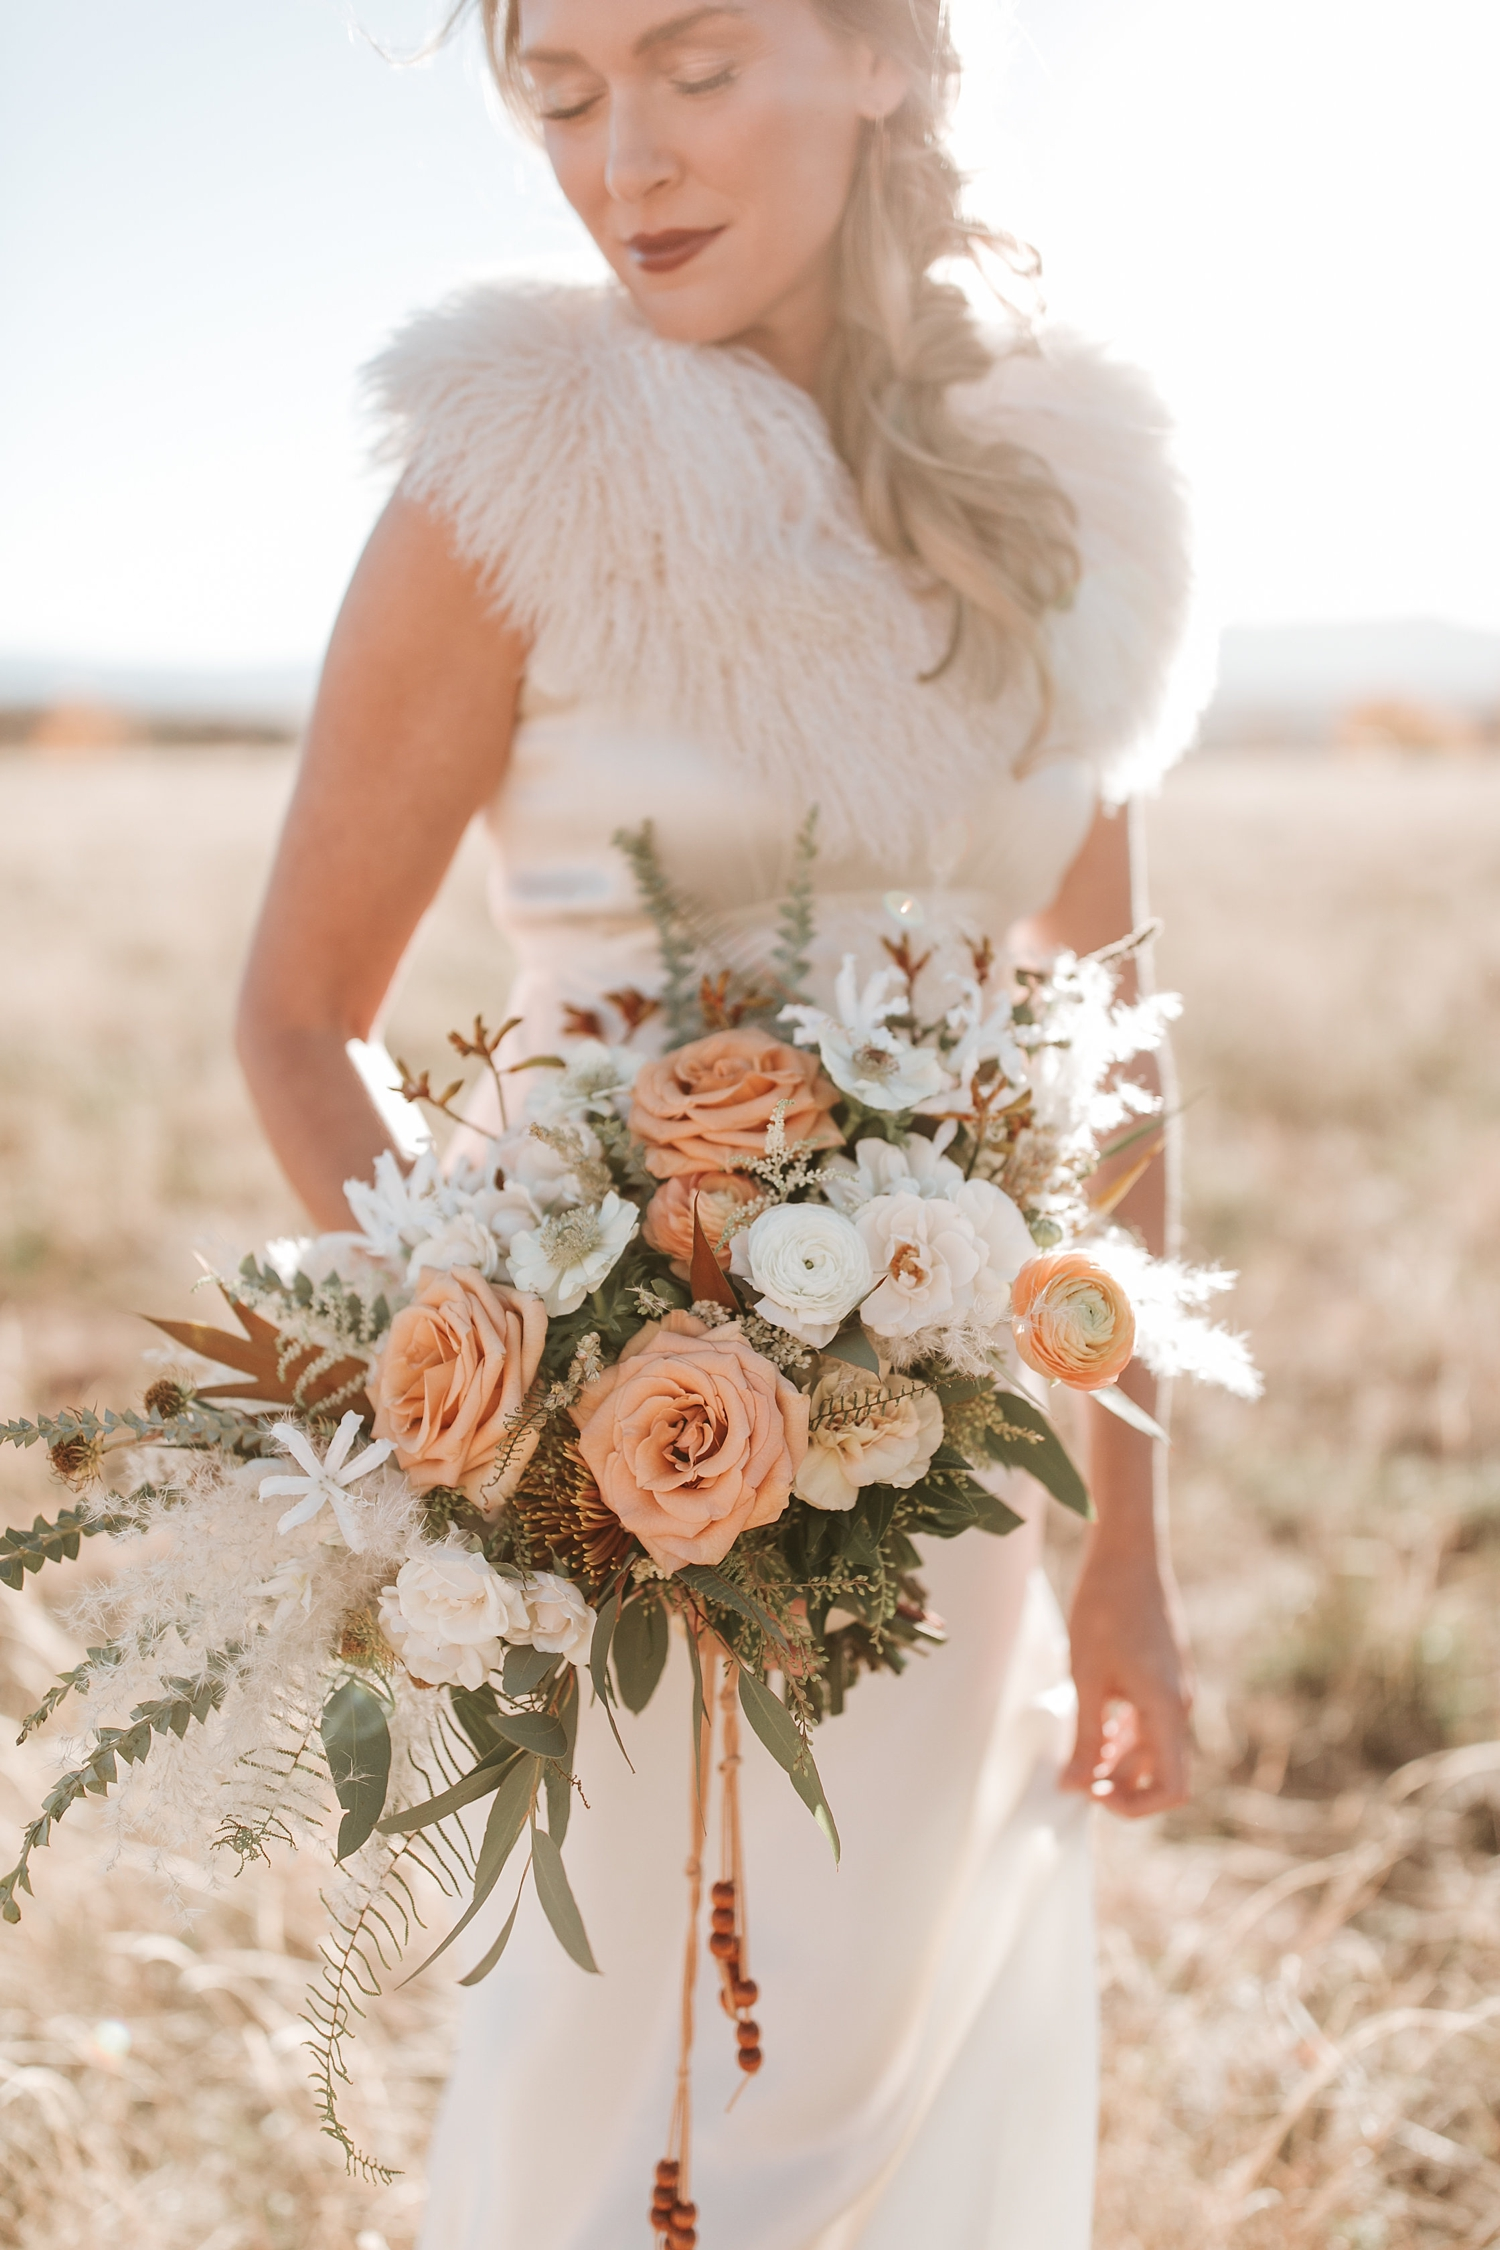 Alicia+lucia+photography+-+albuquerque+wedding+photographer+-+santa+fe+wedding+photography+-+new+mexico+wedding+photographer+-+new+mexico+ghost+ranch+wedding+-+styled+wedding+shoot_0037.jpg